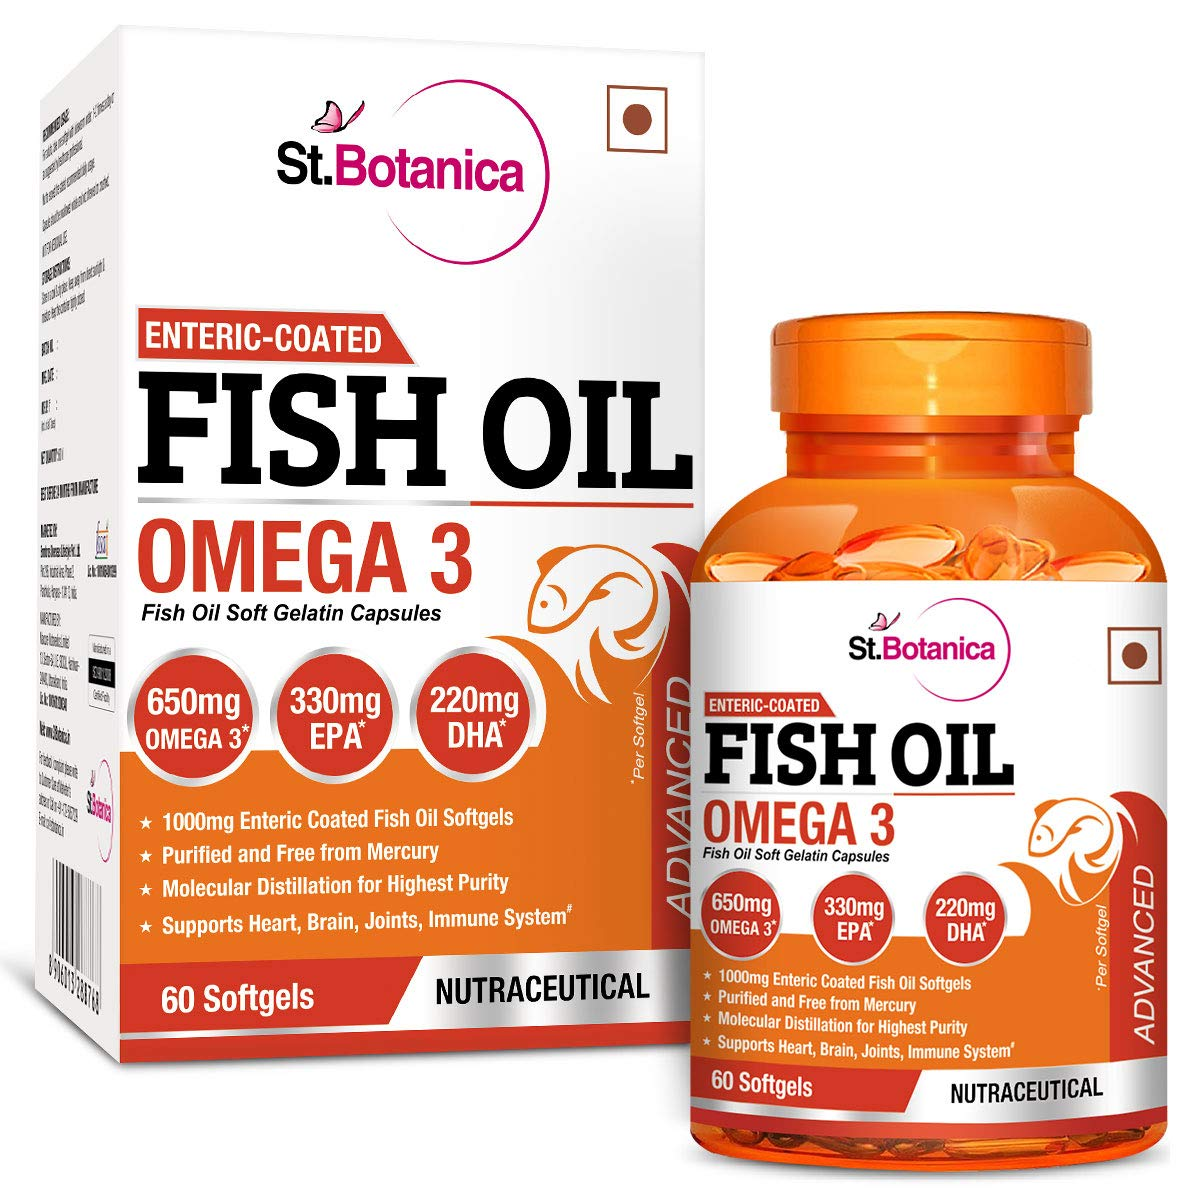 StBotanica Fish Oil Omega 3 Advanced 1000mg (Double Strength) 650mg Omega 3 - 60 Enteric Coated Softgels product image